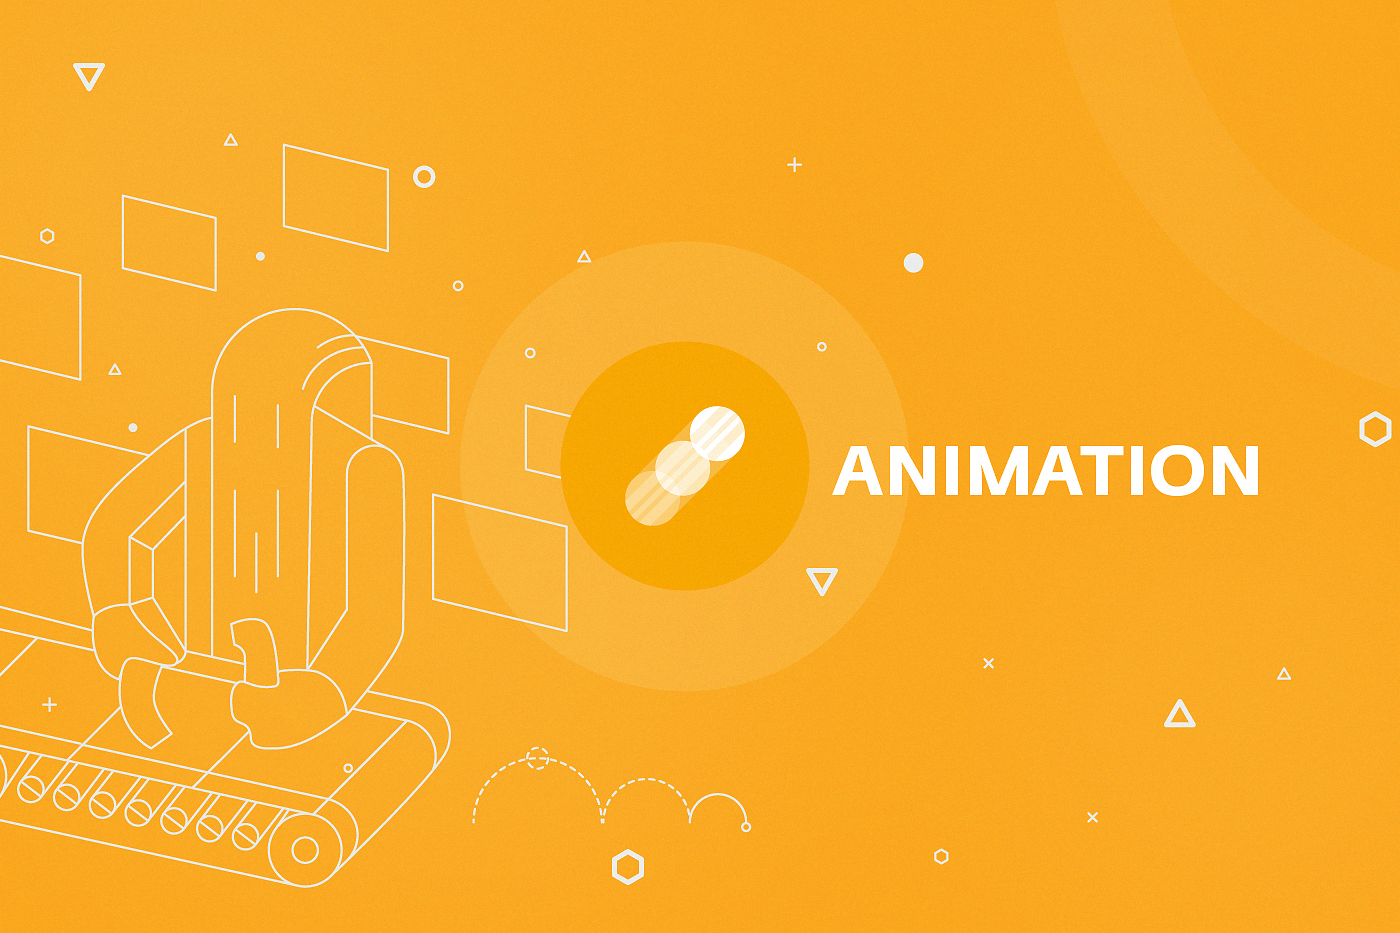 animation eng - Making Art from Lines